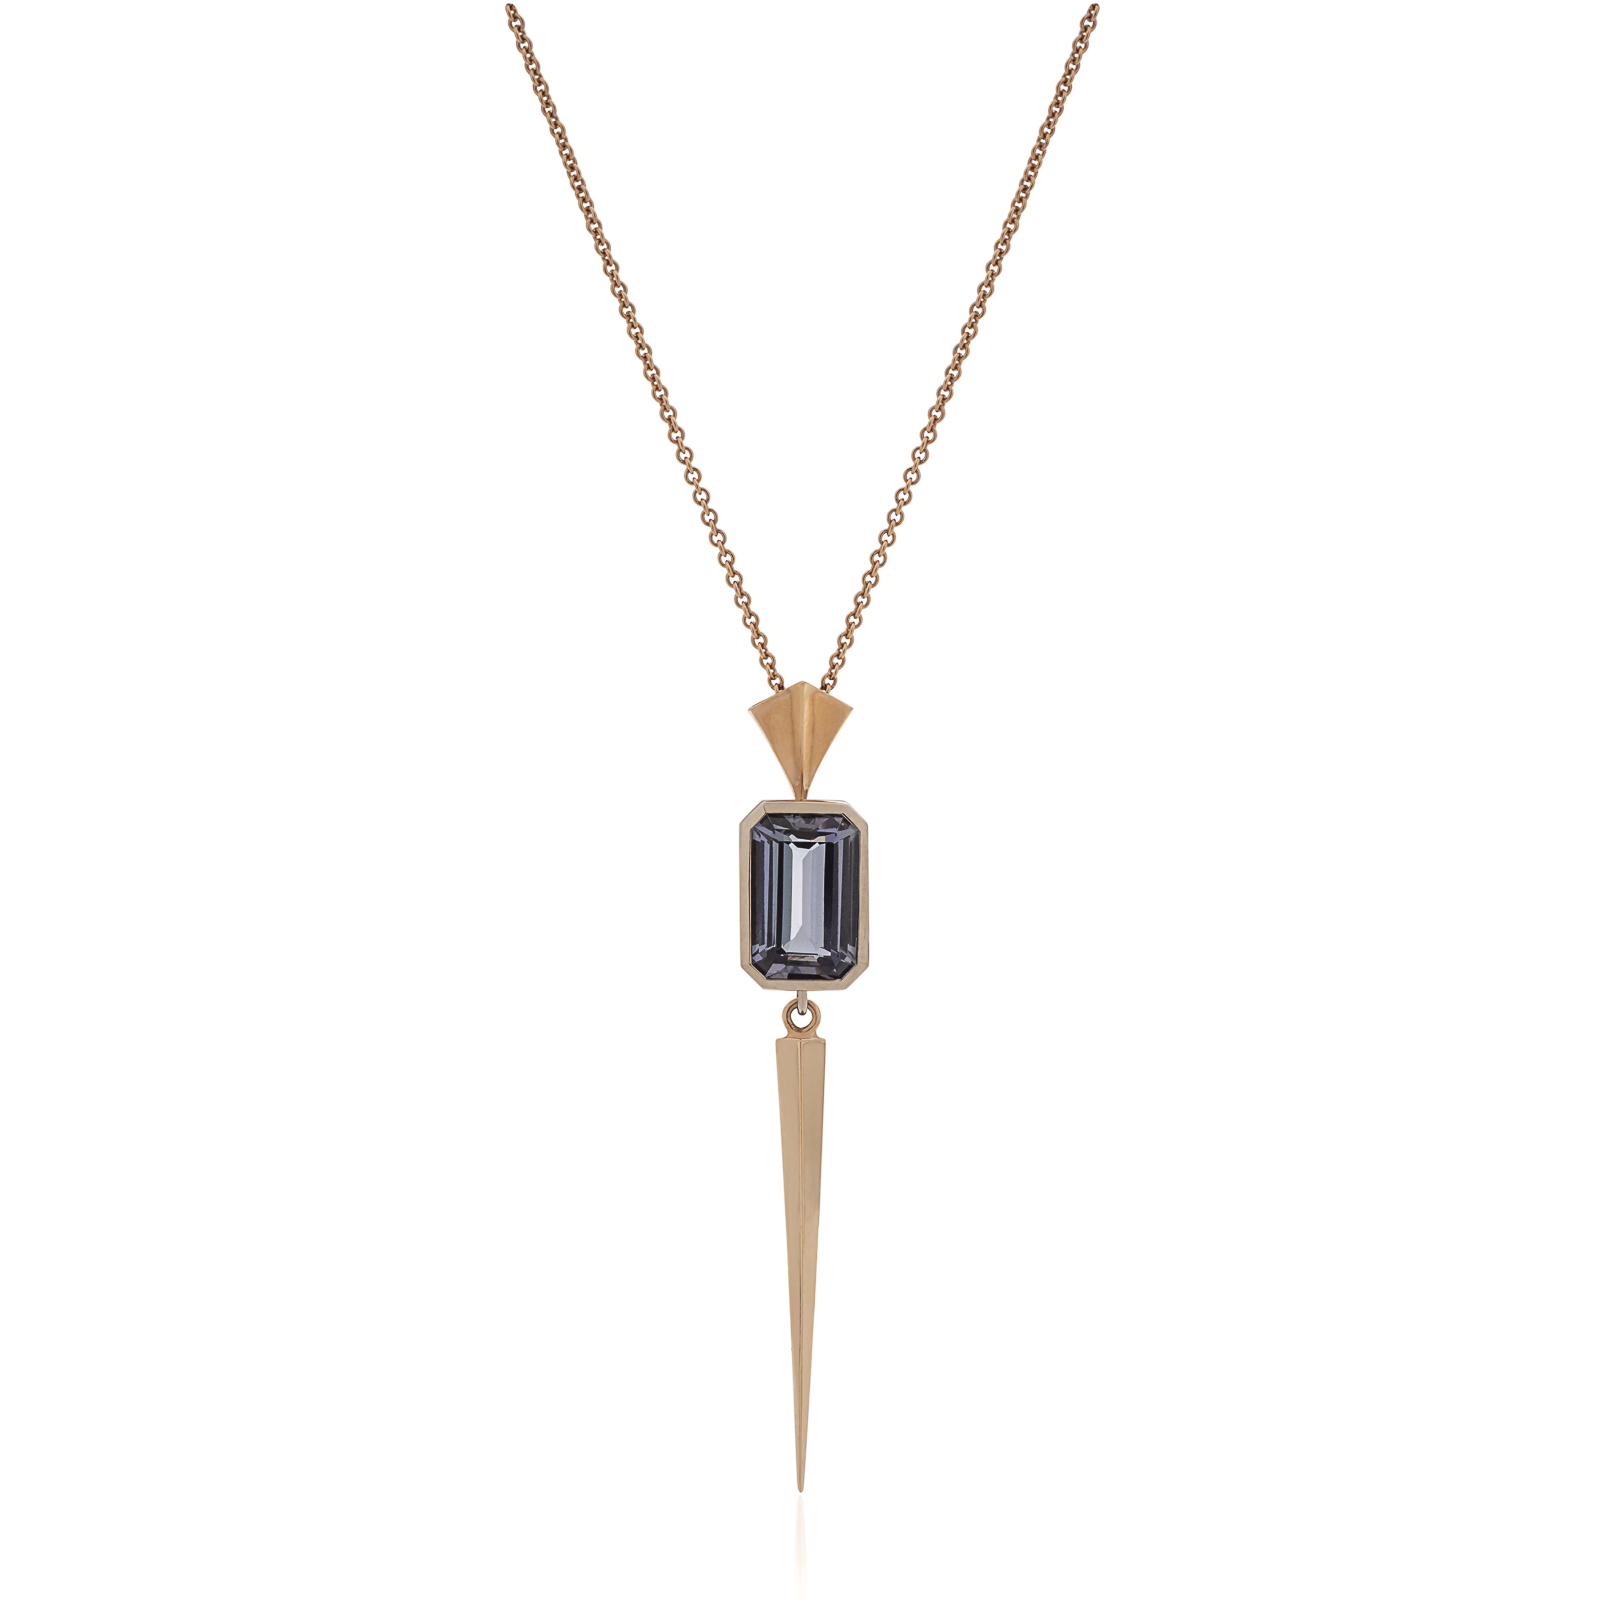 Fierce Beauty Pendant - Tanzanite (3.01ct) set with a solid tetrahedron tassel in 18k white and rose goldCreated for a badass warrior woman who is ready to use her sword of truth!